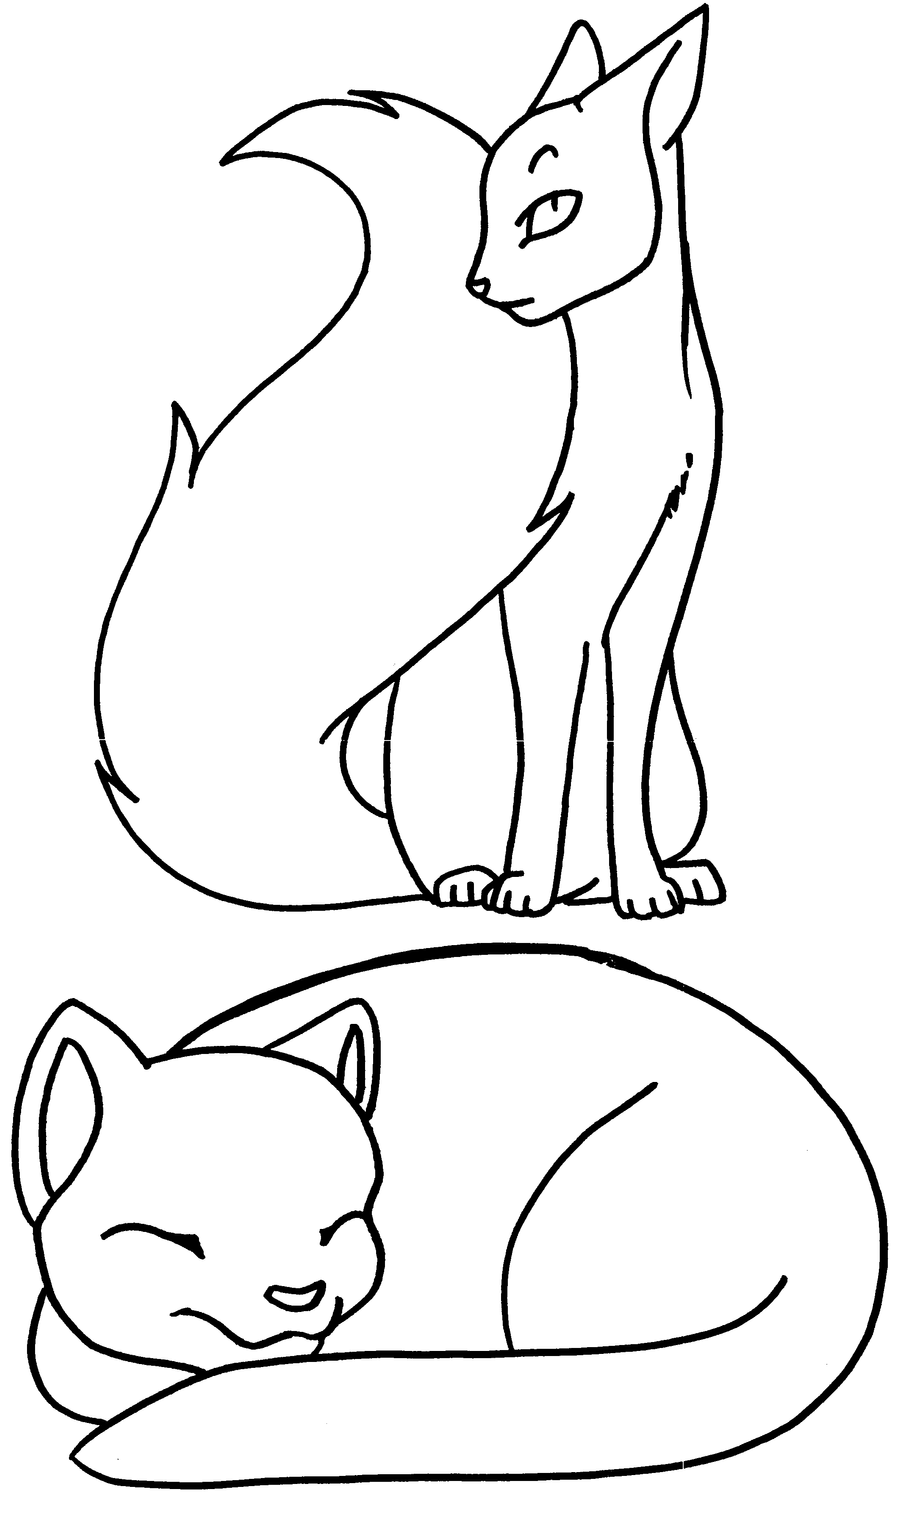 art therapy coloring pages cat - photo#25